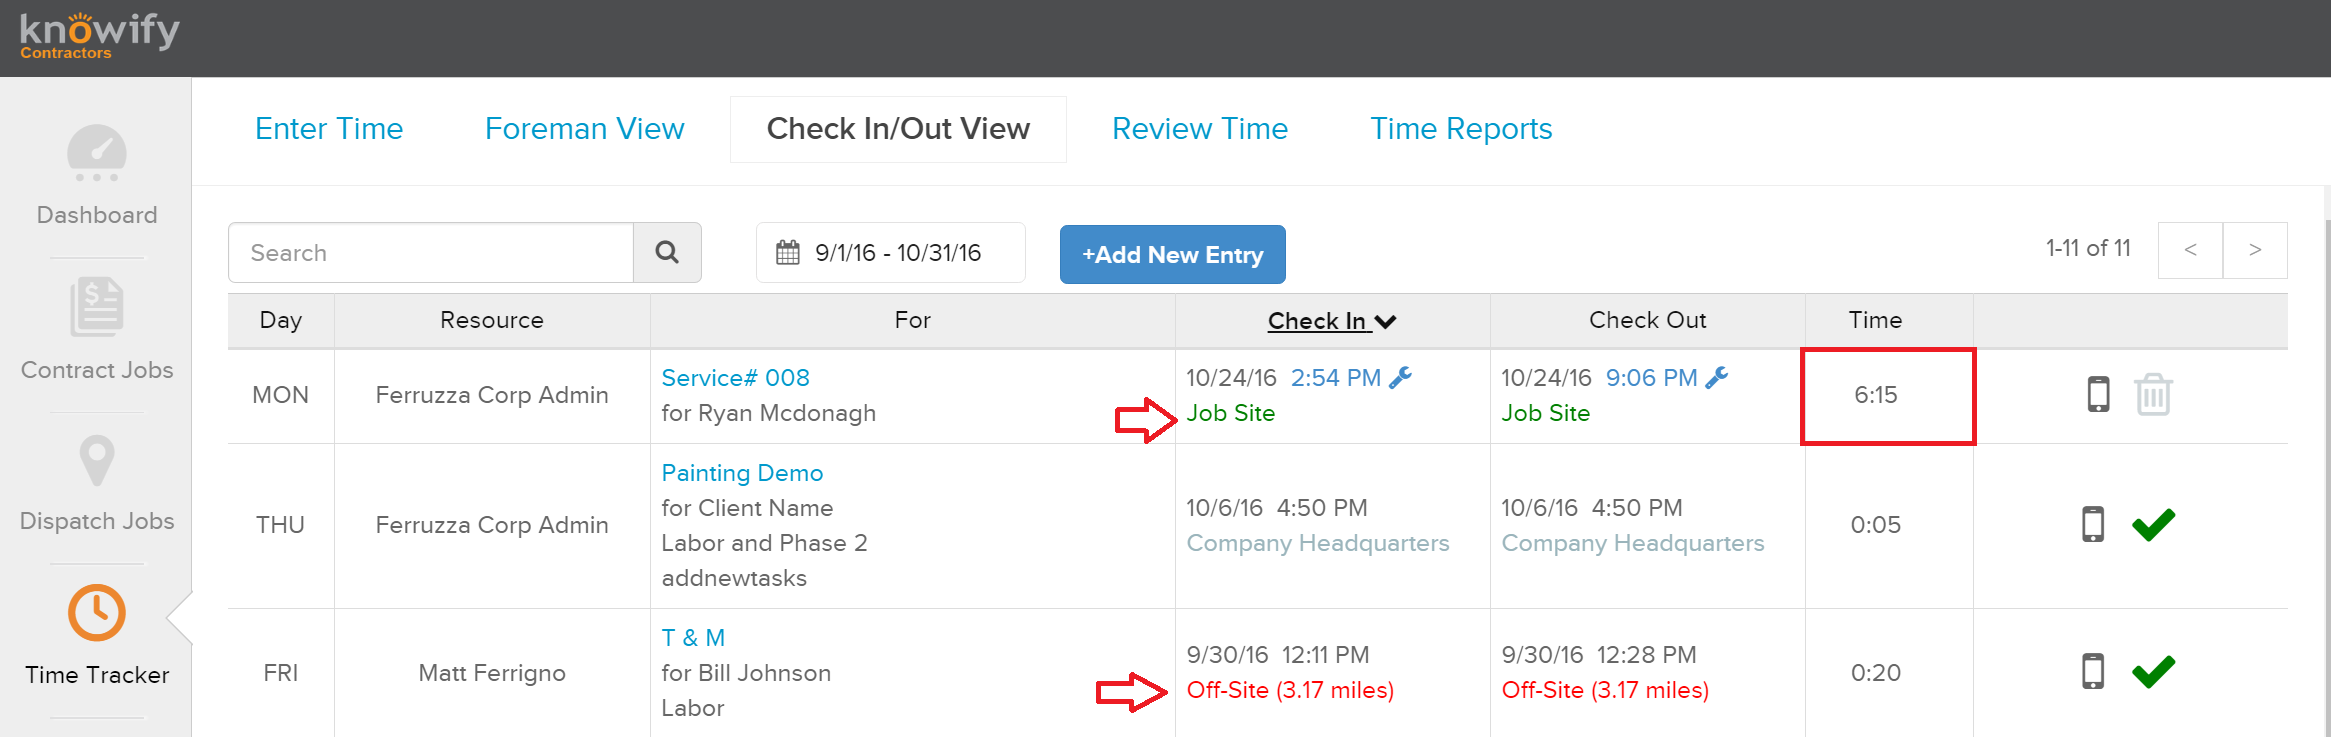 knowify blog can see in the screenshot above we display the day employee job and job phase they checked in for a timestamp of when they checked in and out